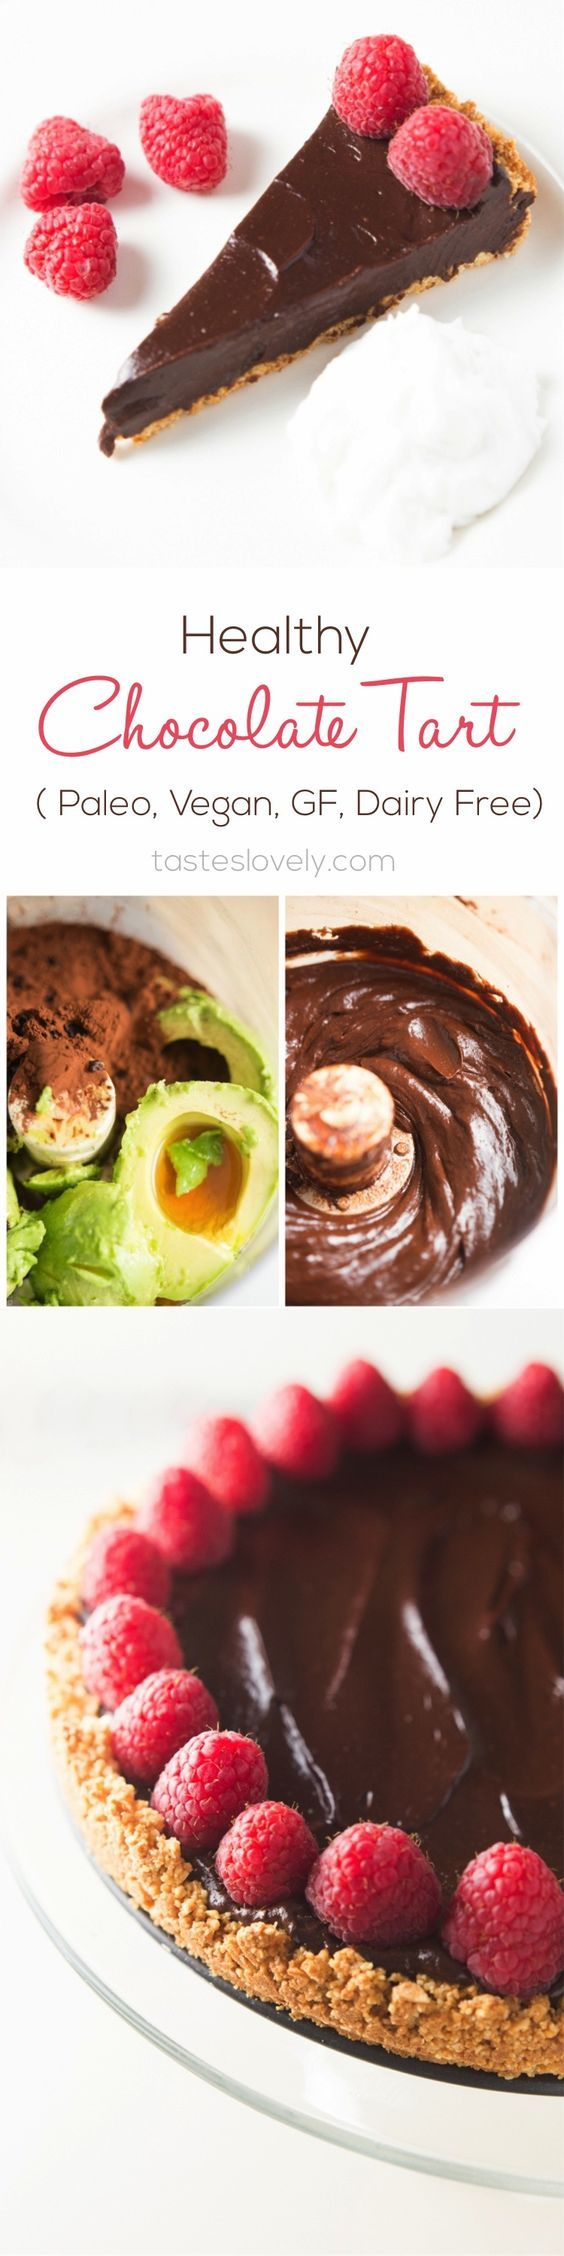 Healthy chocolate tart made with avocados, cocoa powder and sweetened with pure maple syrup. So delicious! #paleo #vegan